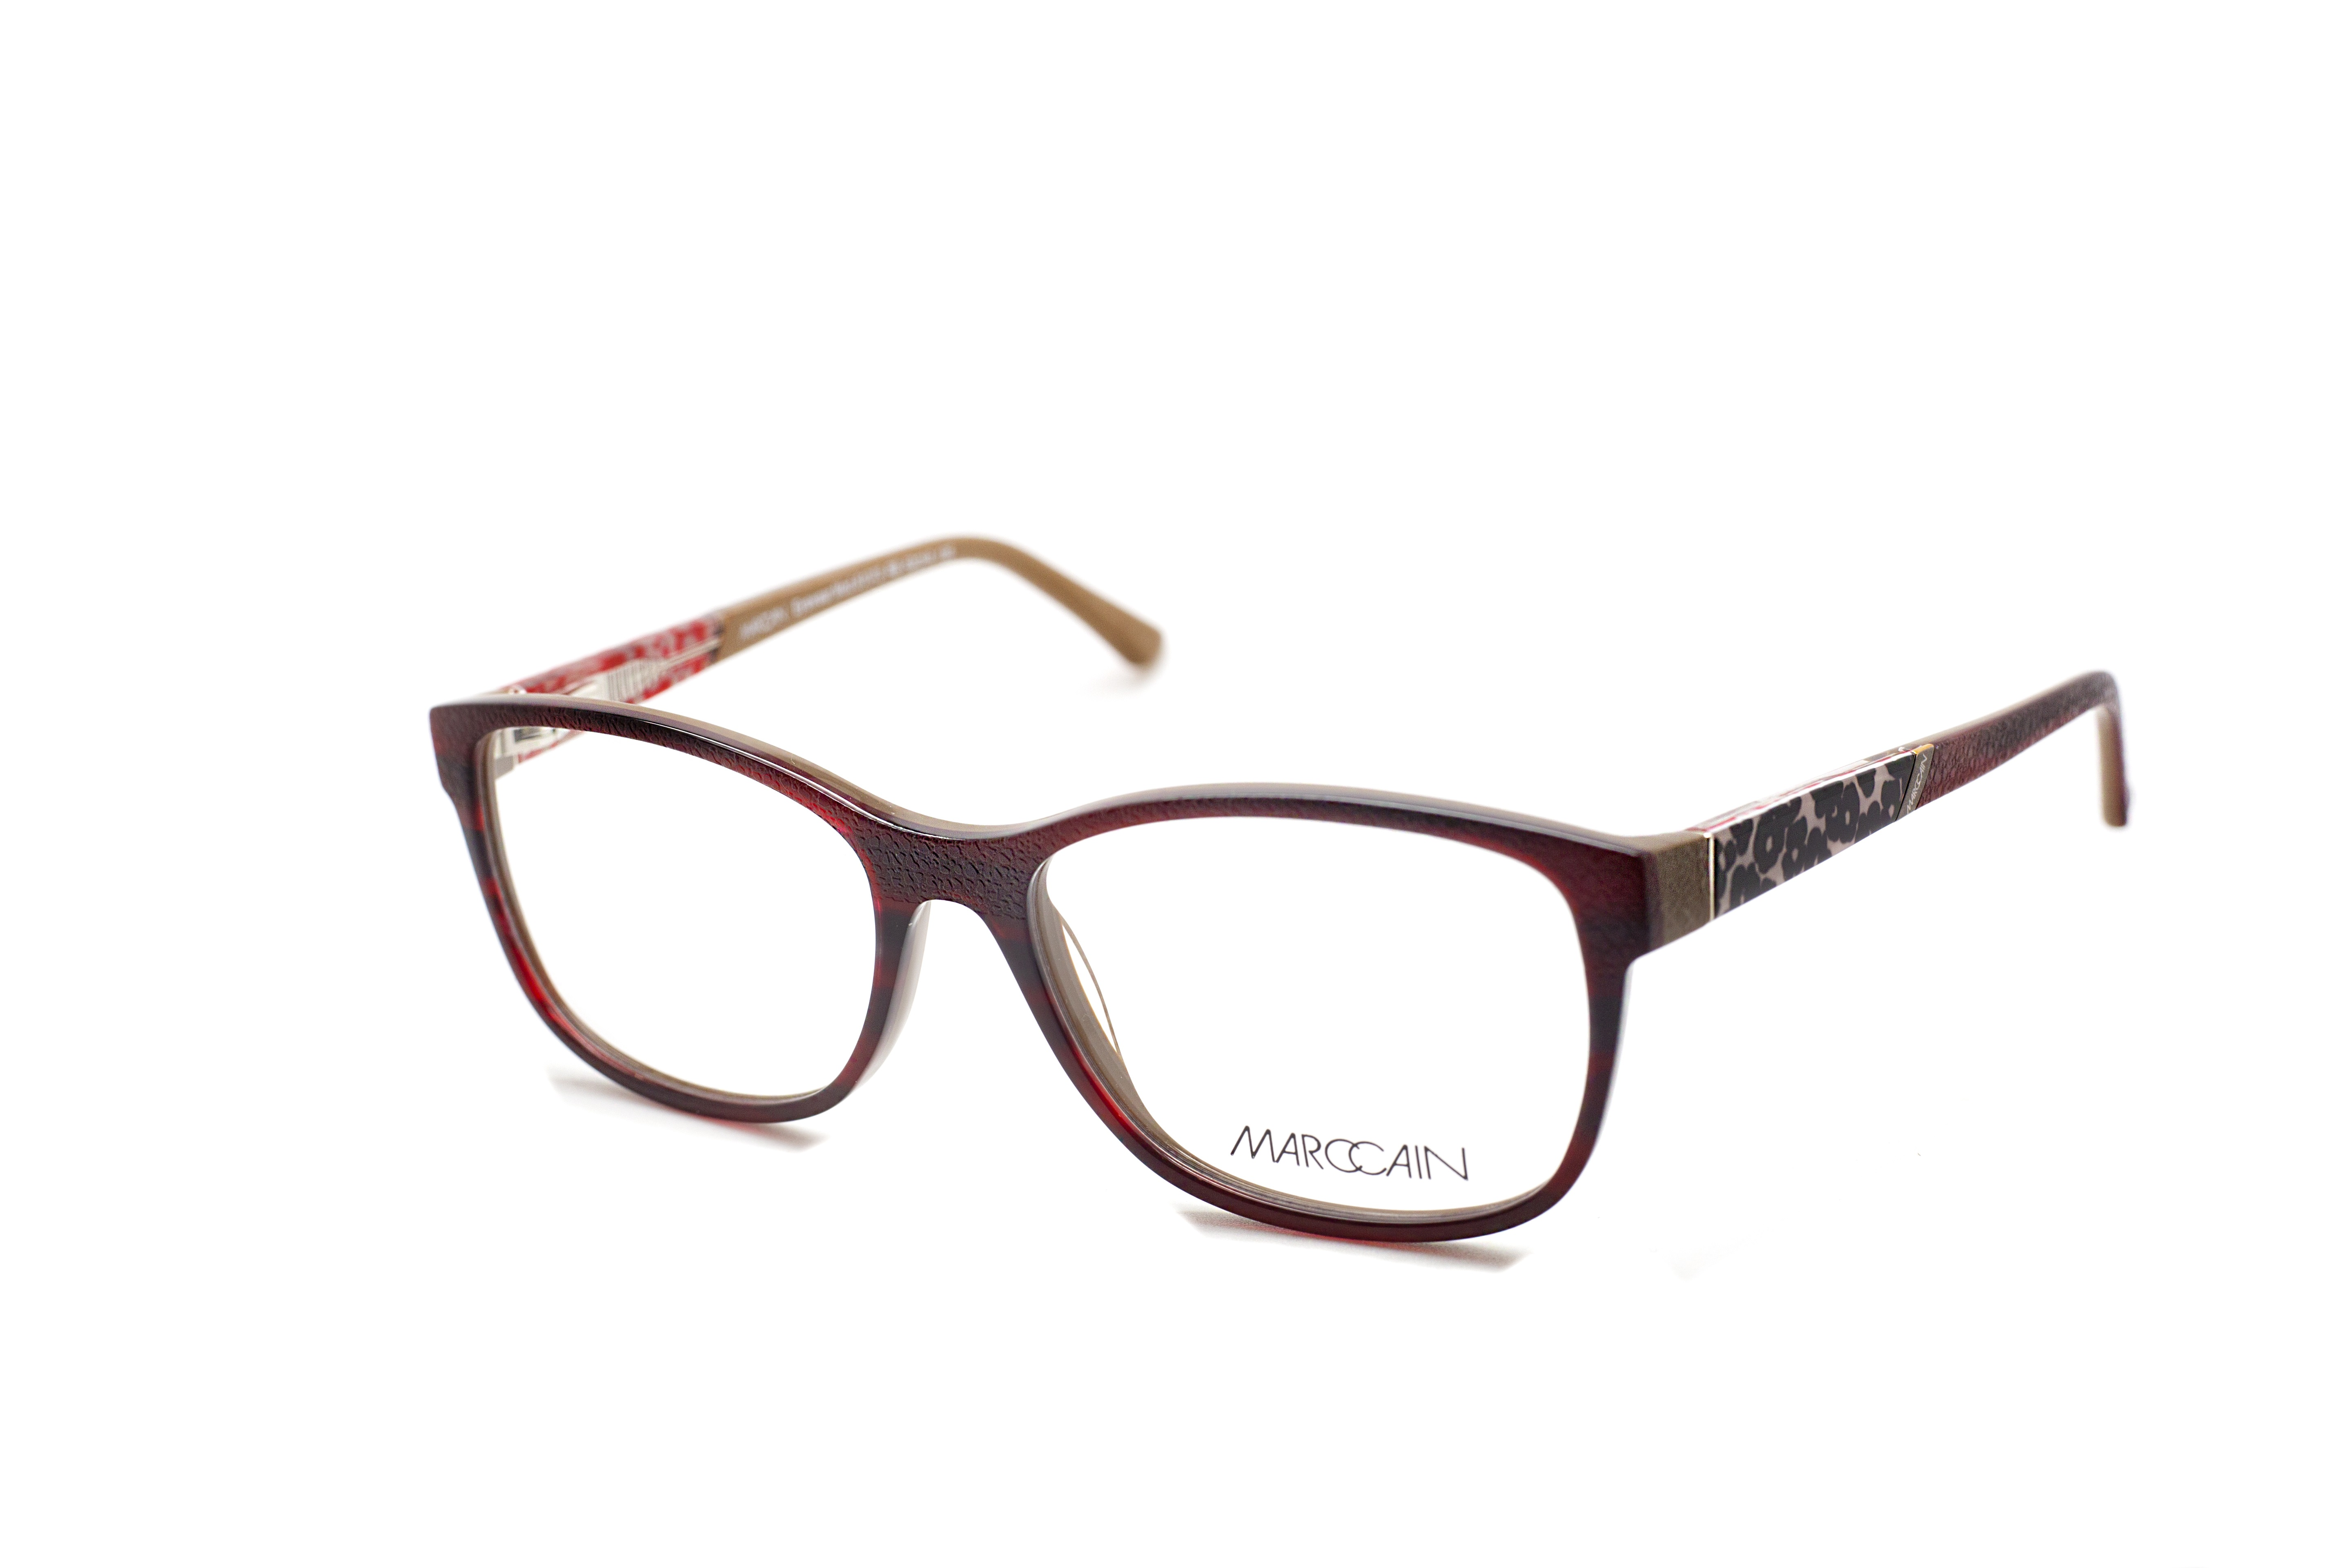 Marc Cain 81073 - Burgundy (RB)